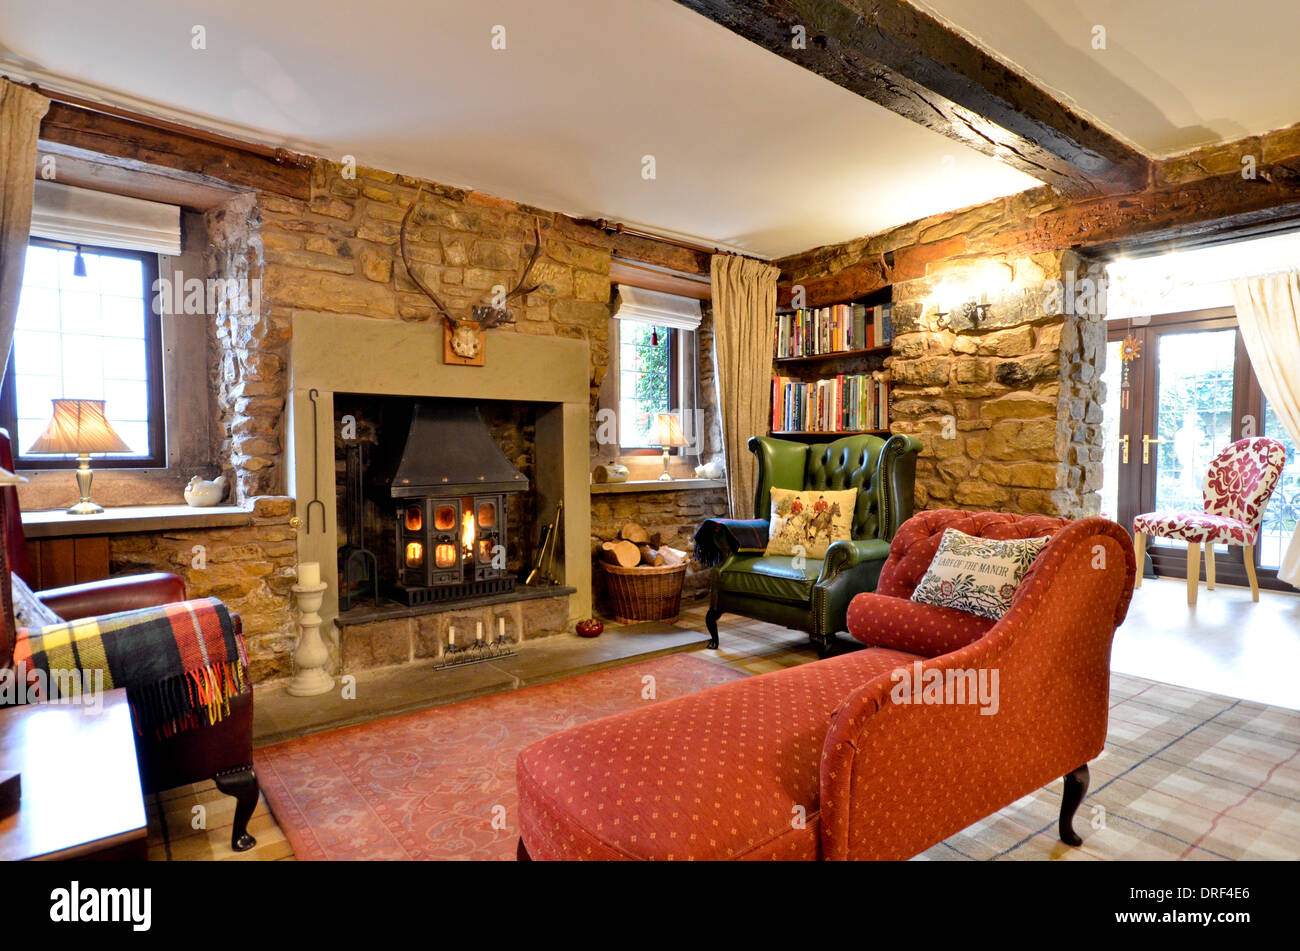 Farmhouse Living Room With Stone Fireplace And Wood Burning Stove Stock Photo Royalty Free